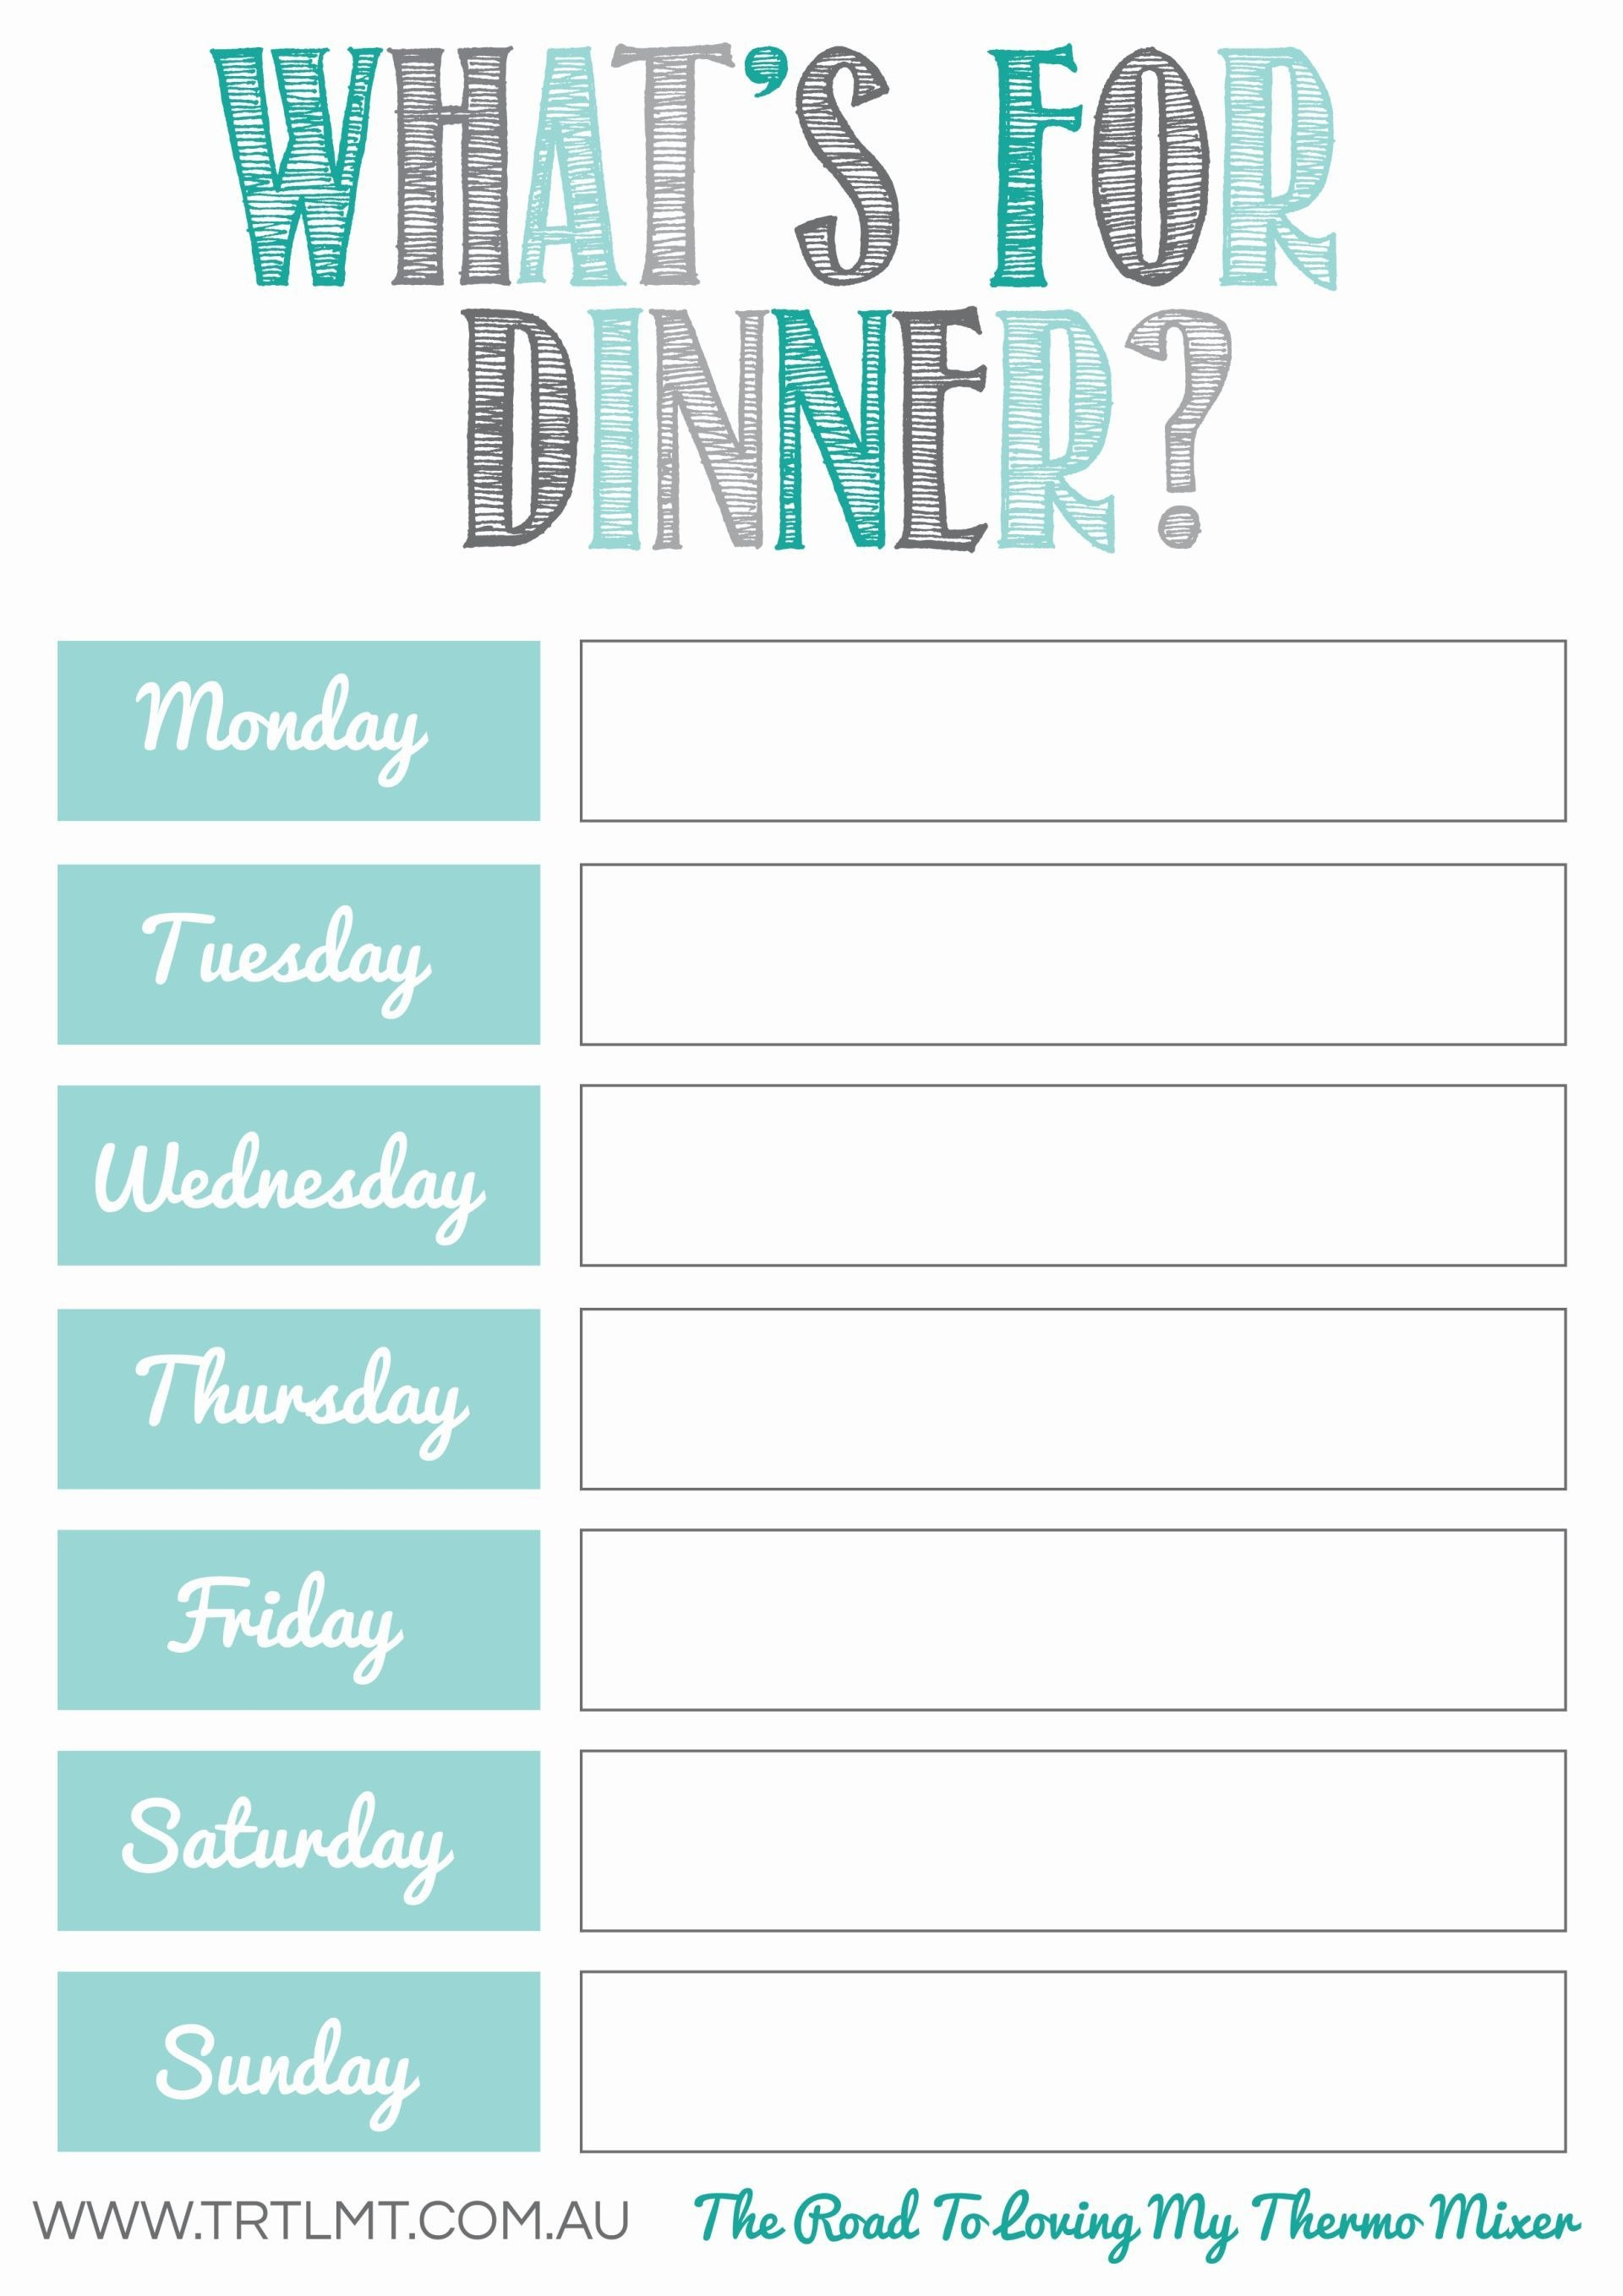 Clip Recipe Cards To It With Magnetic Clips And Hang On Fridge Regarding Weekly Dinner Menu Template